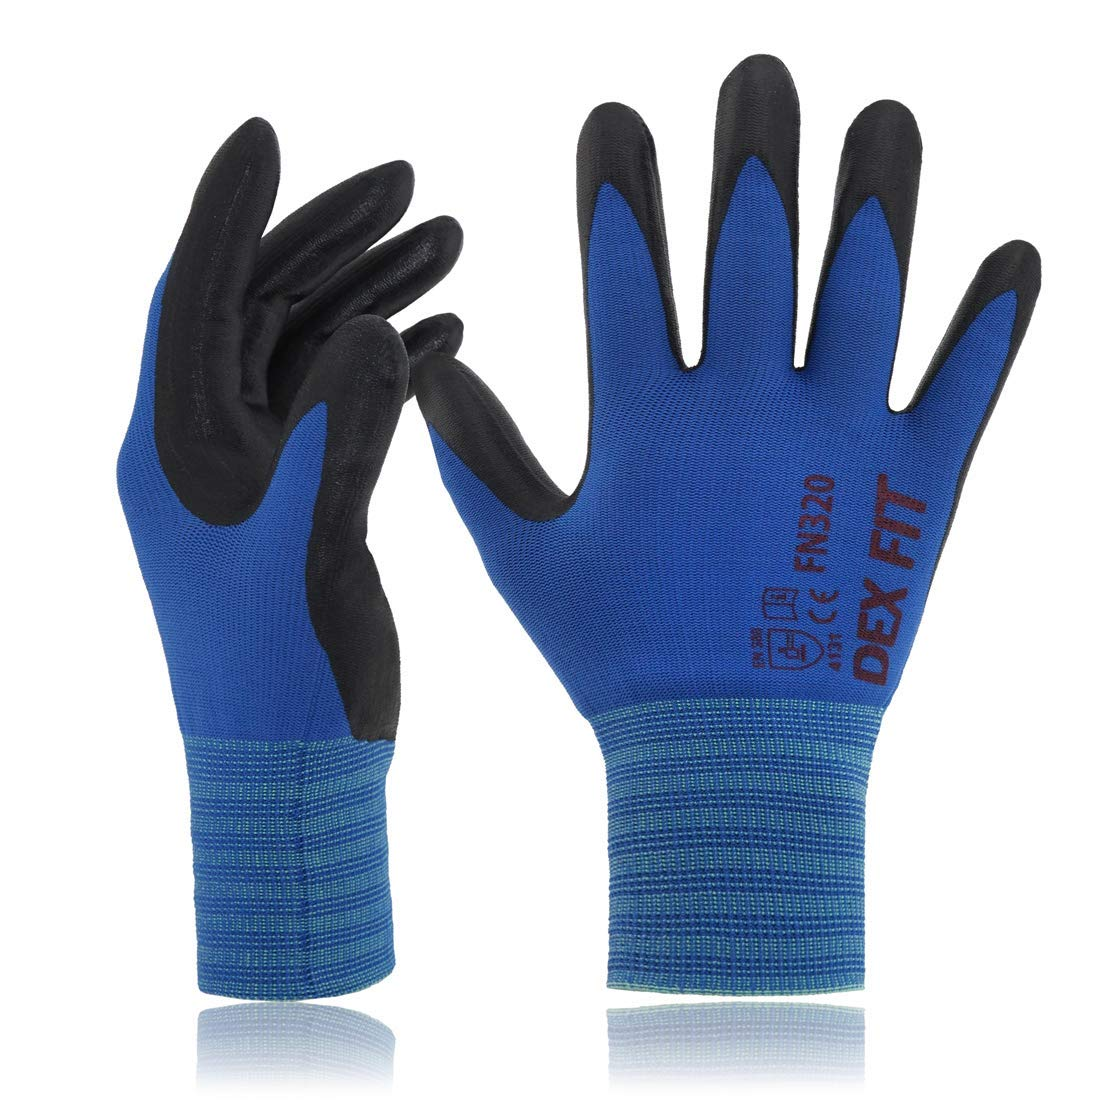 Machine Washable Durable Foam Nitrile Coated Performance Cool Thin /& Lightweight Nylon Power Grip 3D Comfort Stretch Fit Large 3 Pairs Pack DEX FIT Black Work Gloves FN320